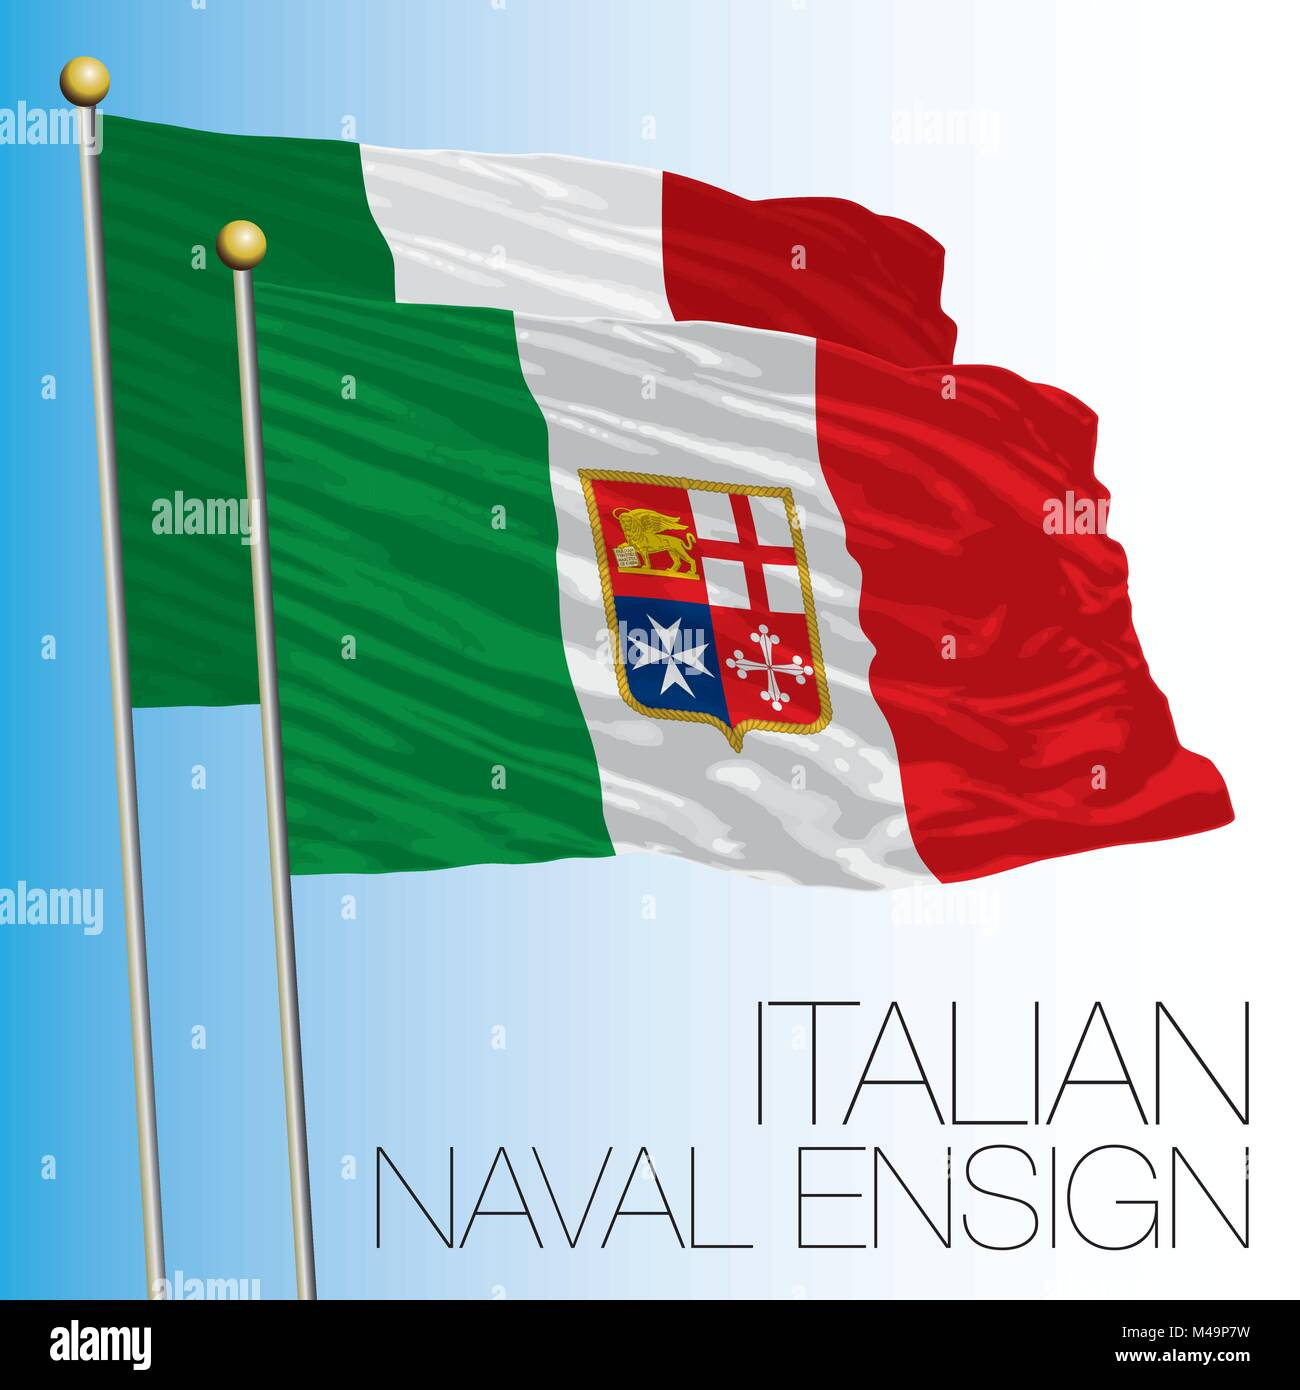 Italian commercial navy flag, Italy - Stock Vector